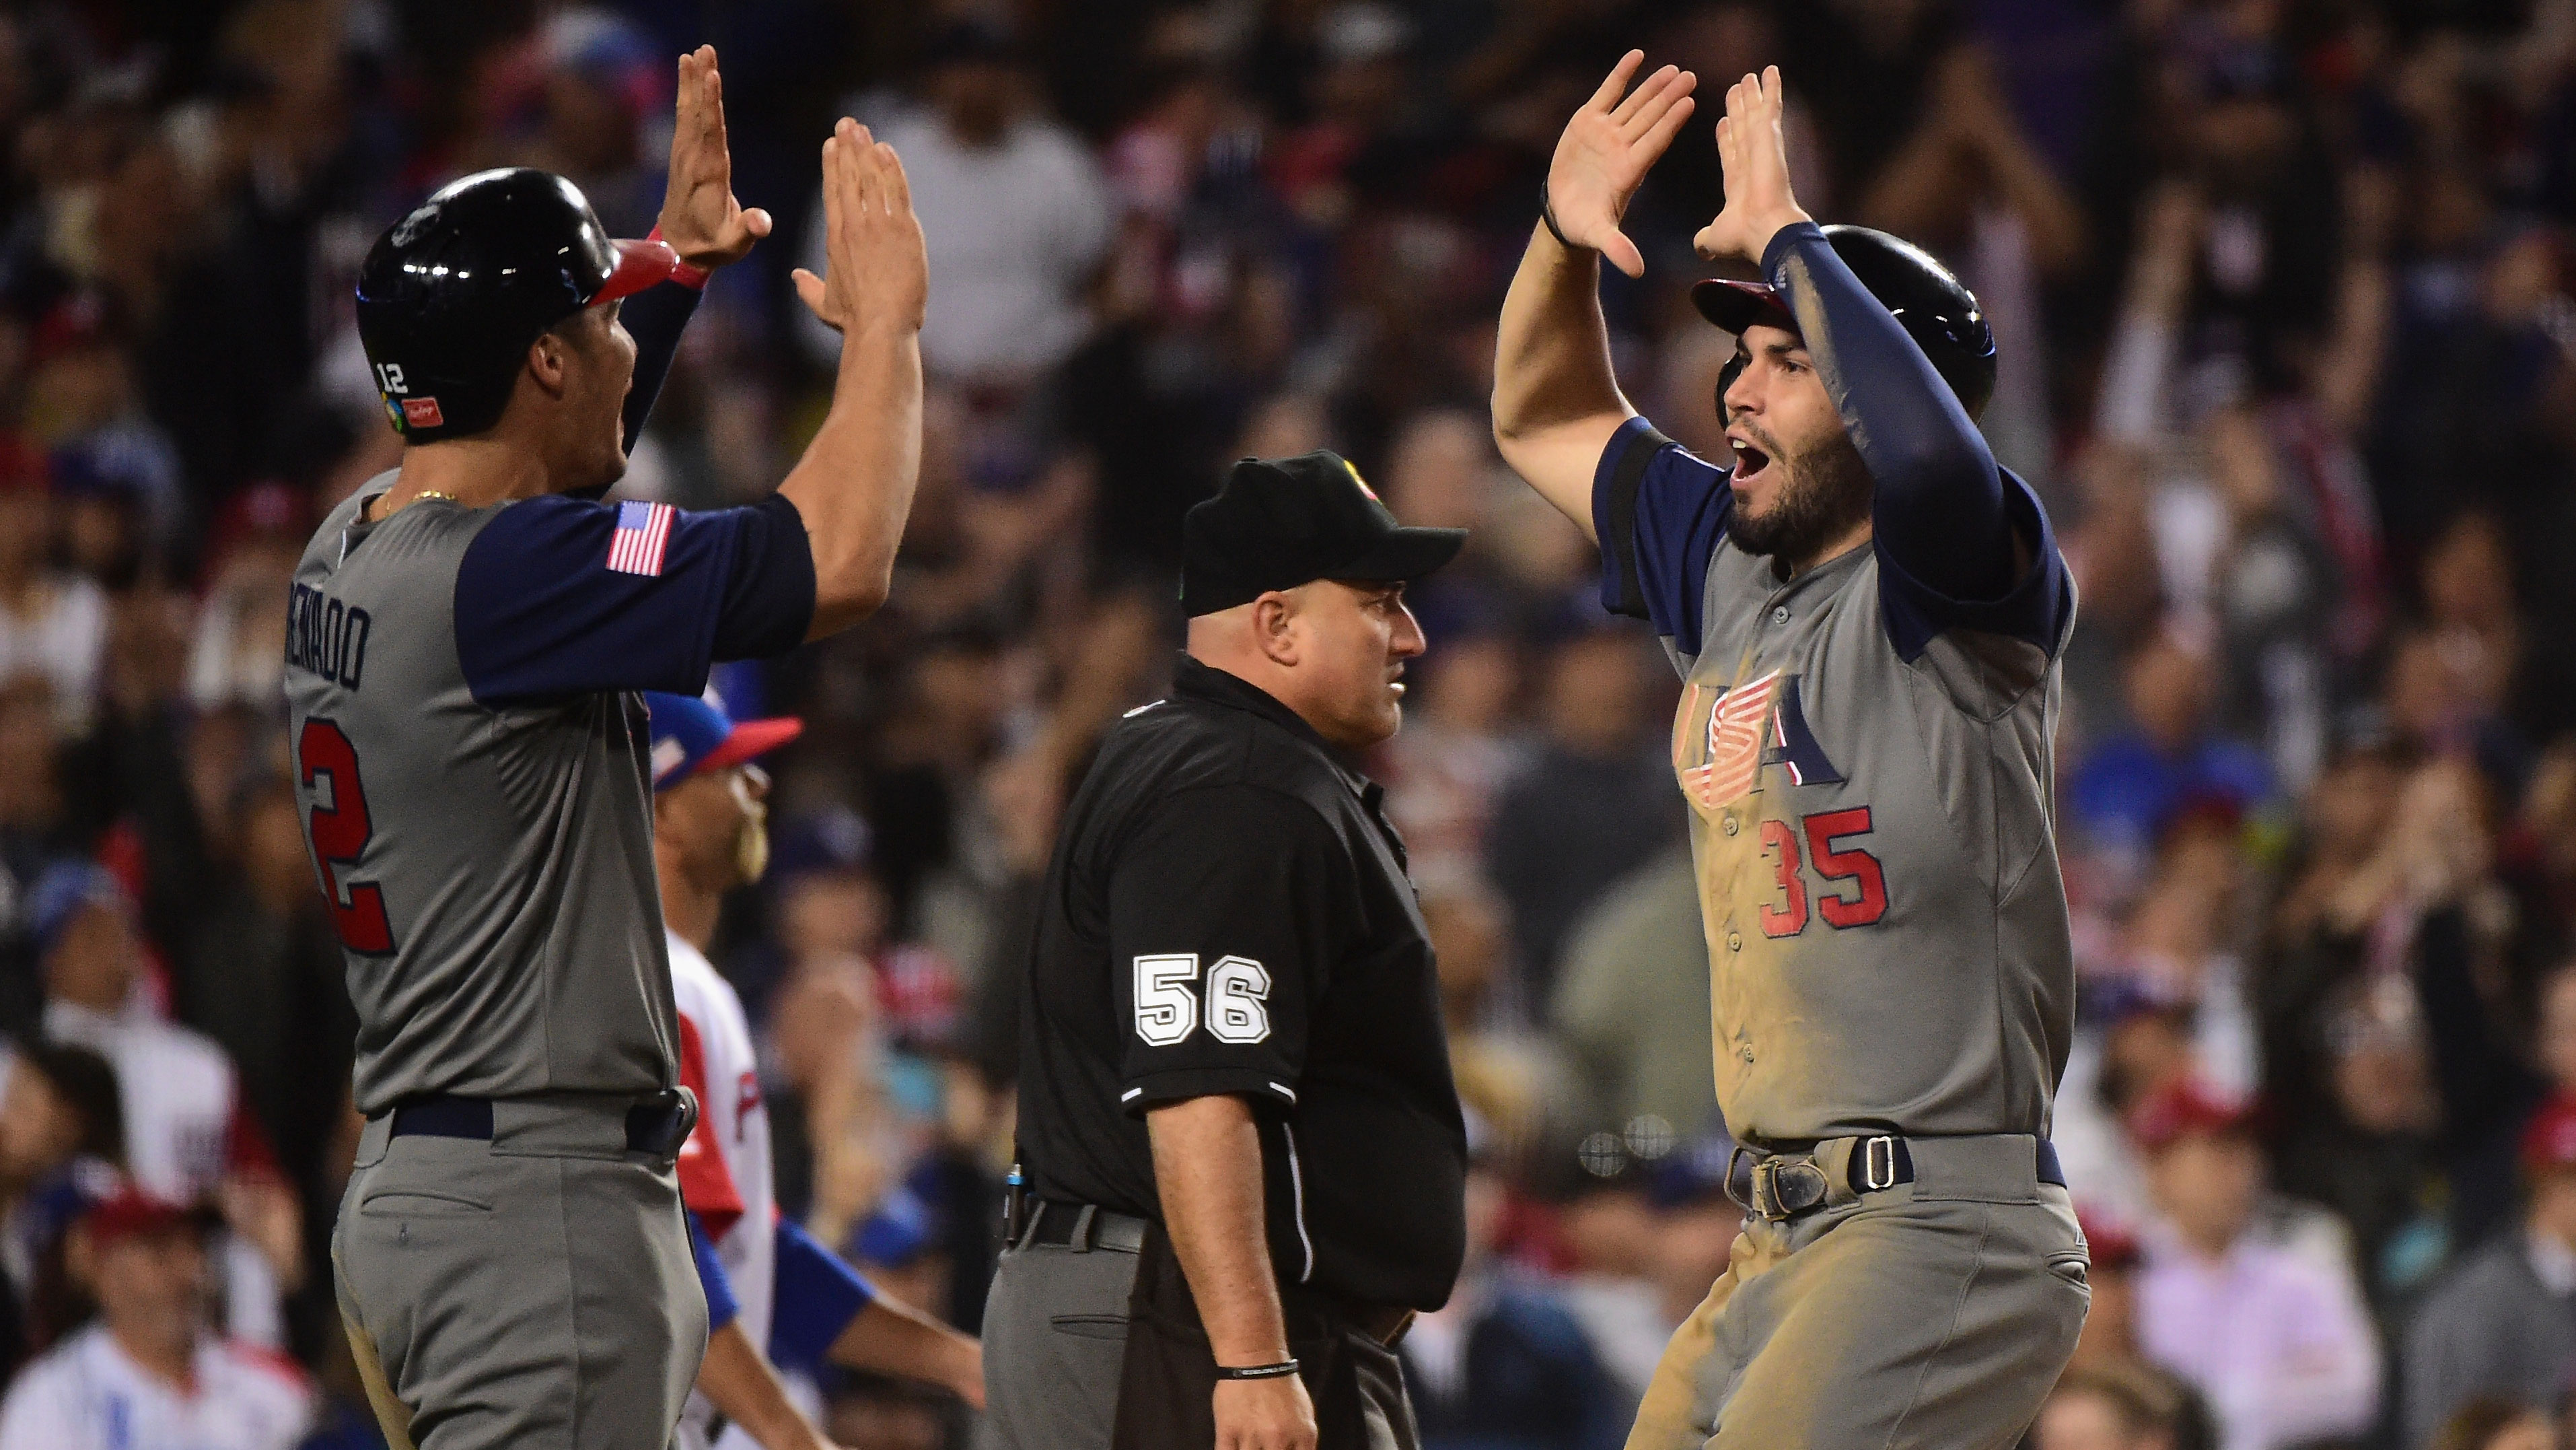 U.S. Shuts Out Puerto Rico to Win First World Baseball Classic Title